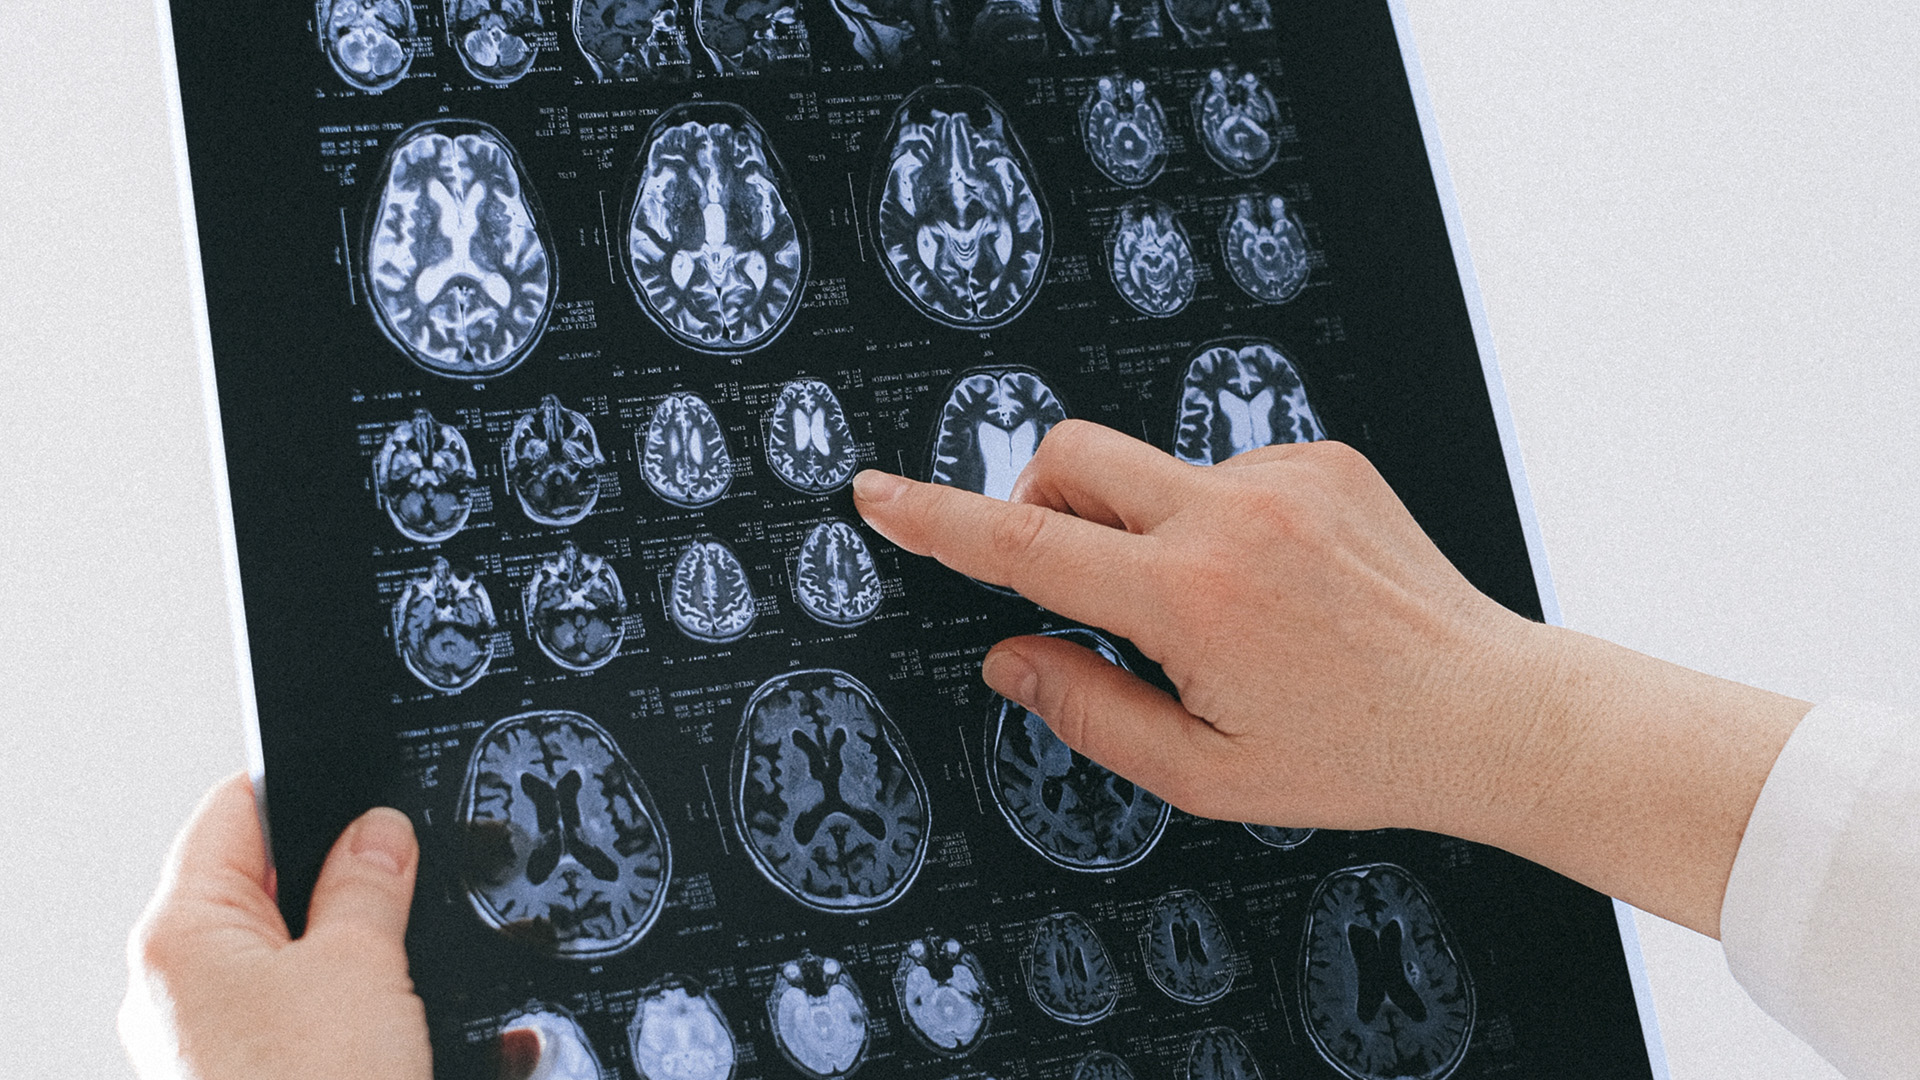 Researchers Find Promising Results For Parkinson's Disease Treatment